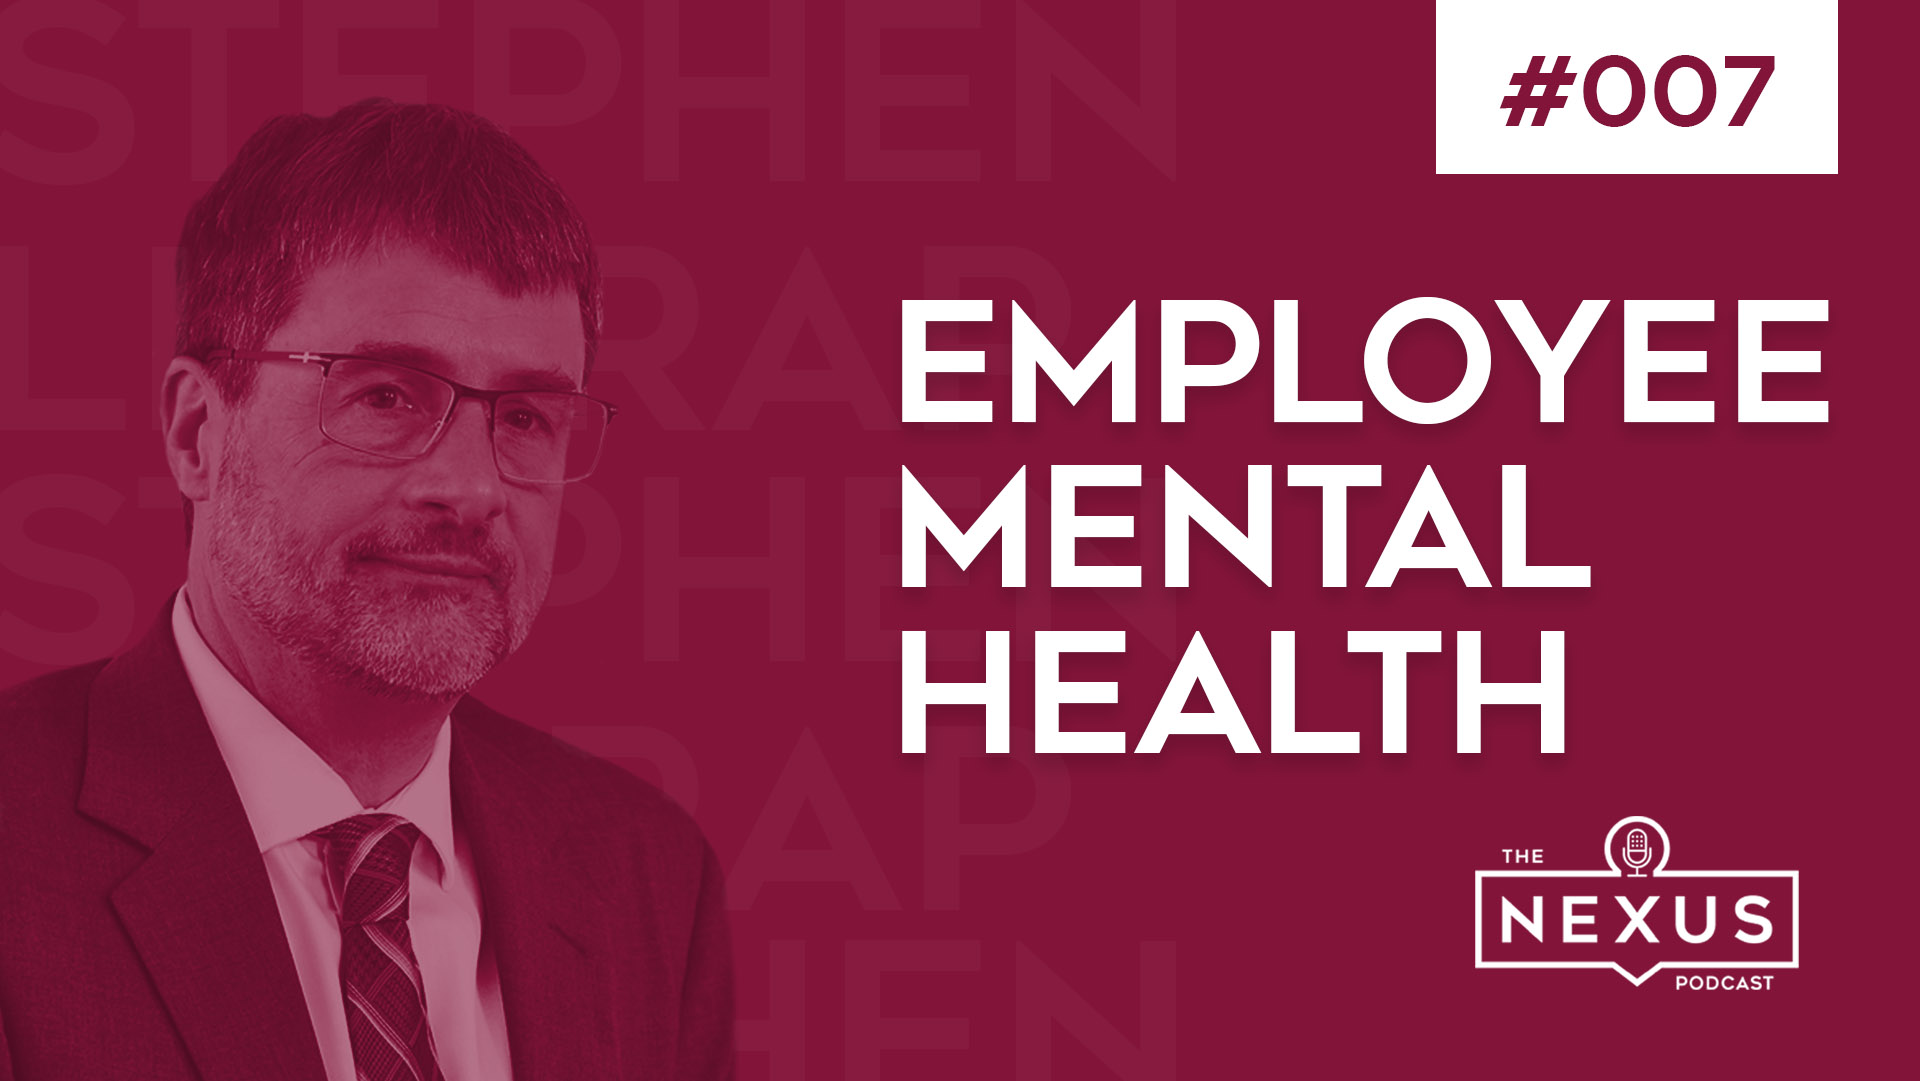 How to Support Employee Mental Health with Stephen Liptrap